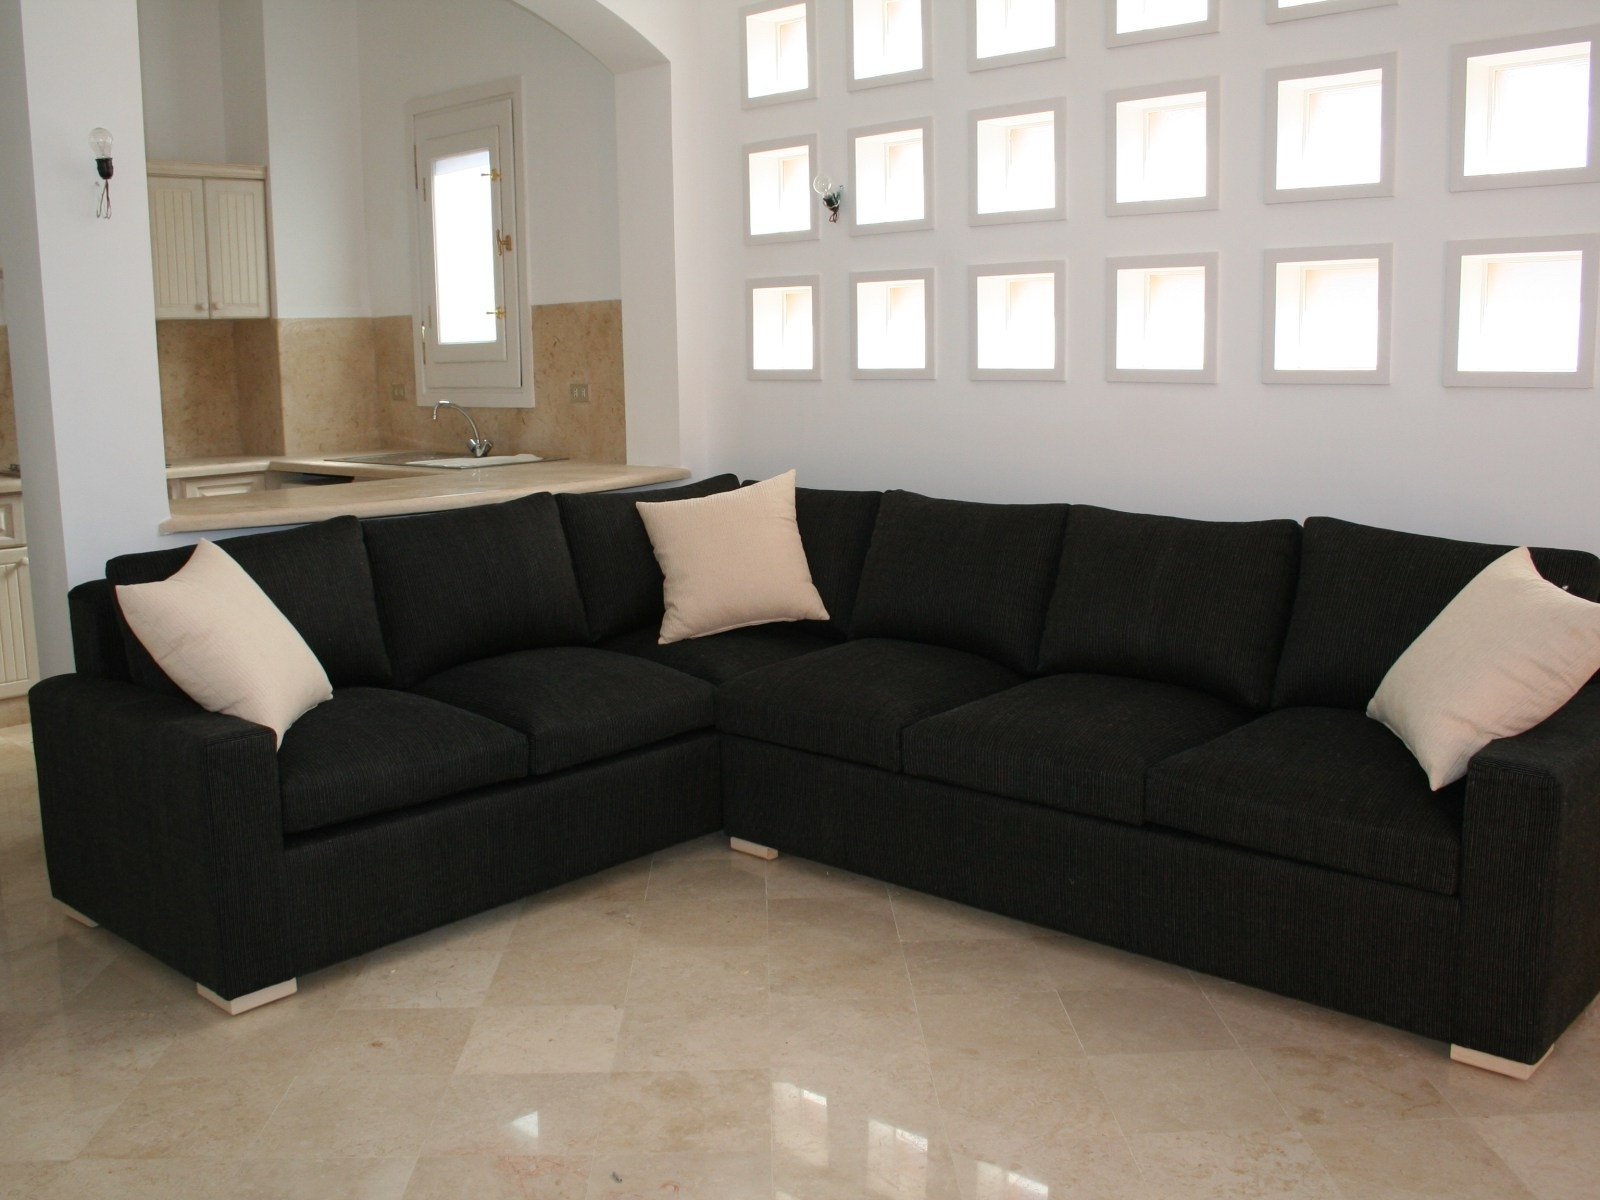 ▻ Sofa : 9 Grand Small Leather Sectional Sofa With Chaise Ebbe16 Intended For Recent Grand Furniture Sectional Sofas (View 1 of 15)